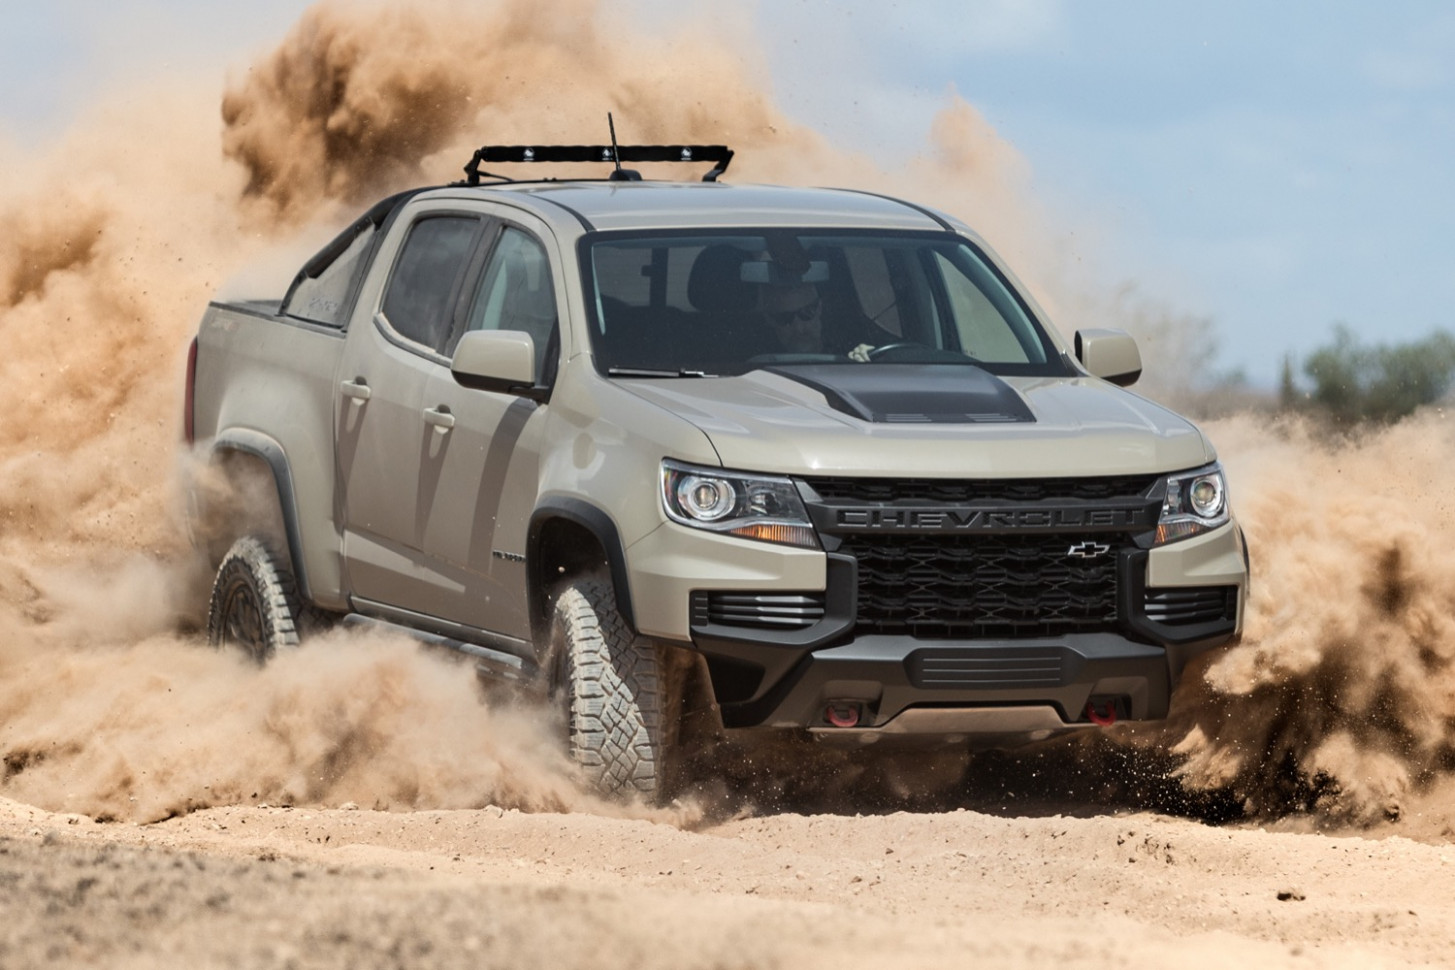 Performance 2022 Chevy Duramax